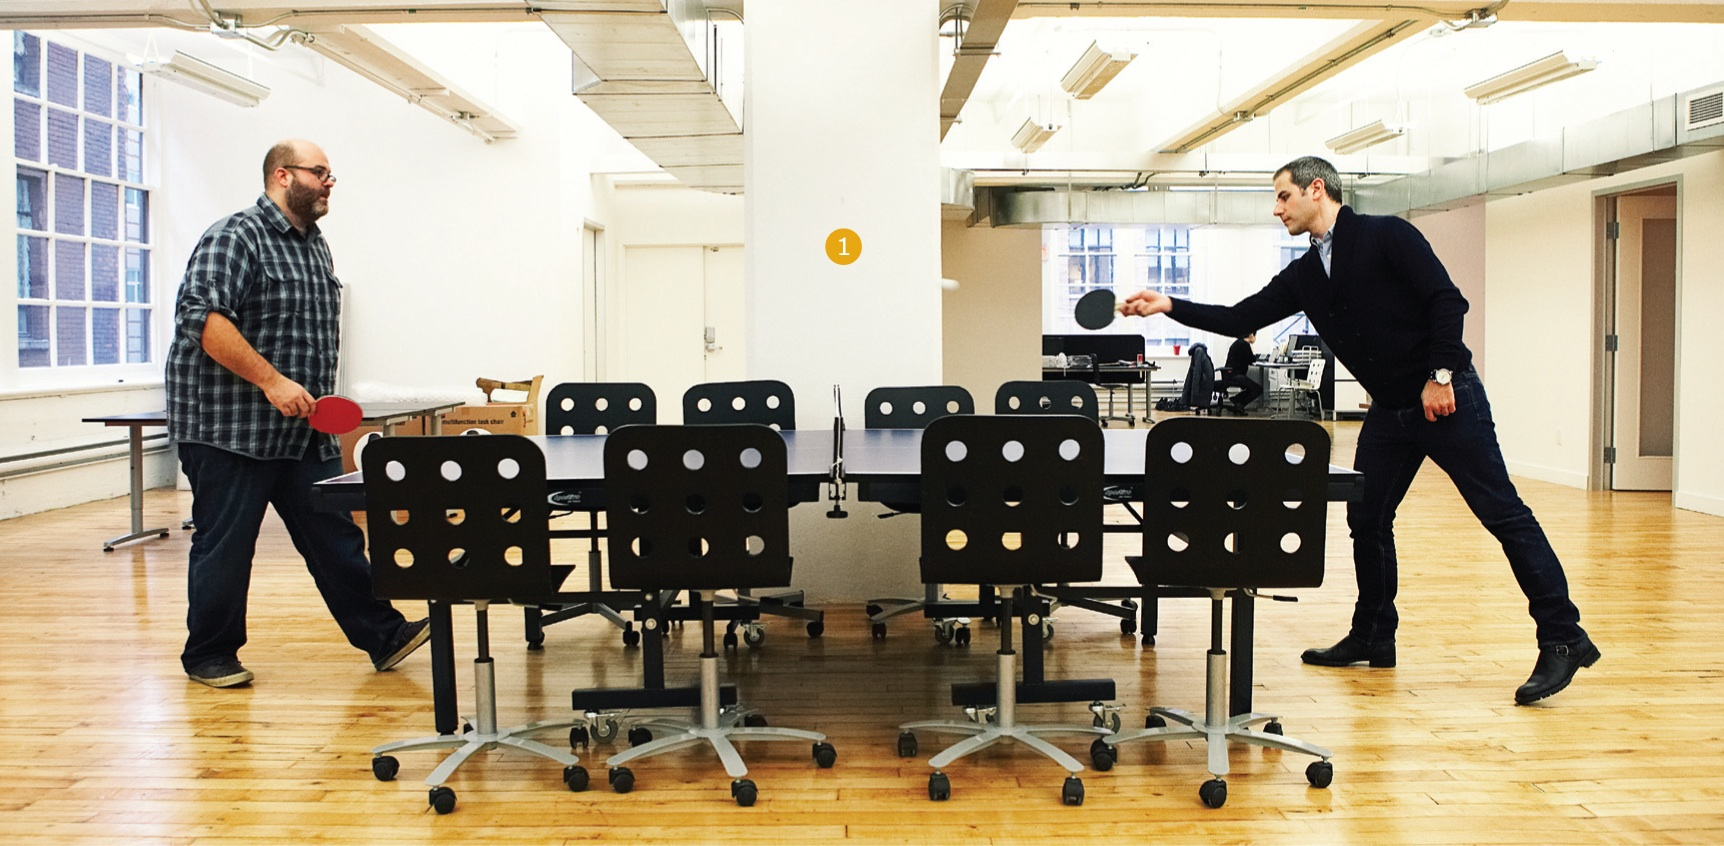 Creative space rethink toronto marketing magazine - How much space for a ping pong table ...